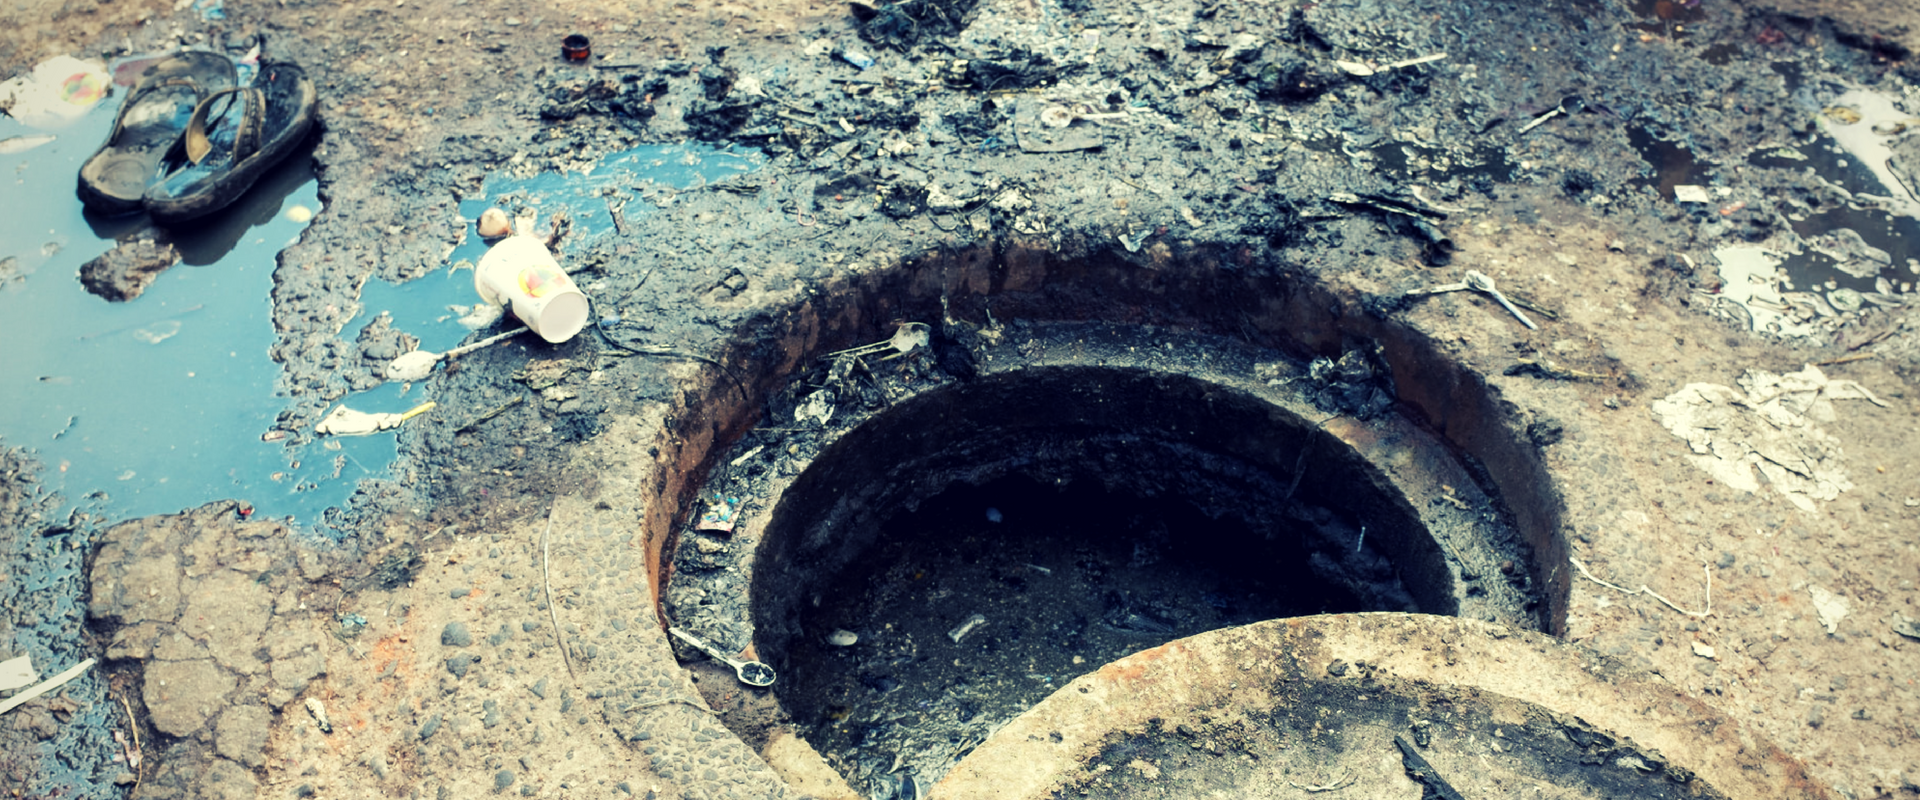 Why India Needs to Address Caste-Based Manual Scavenging Before it